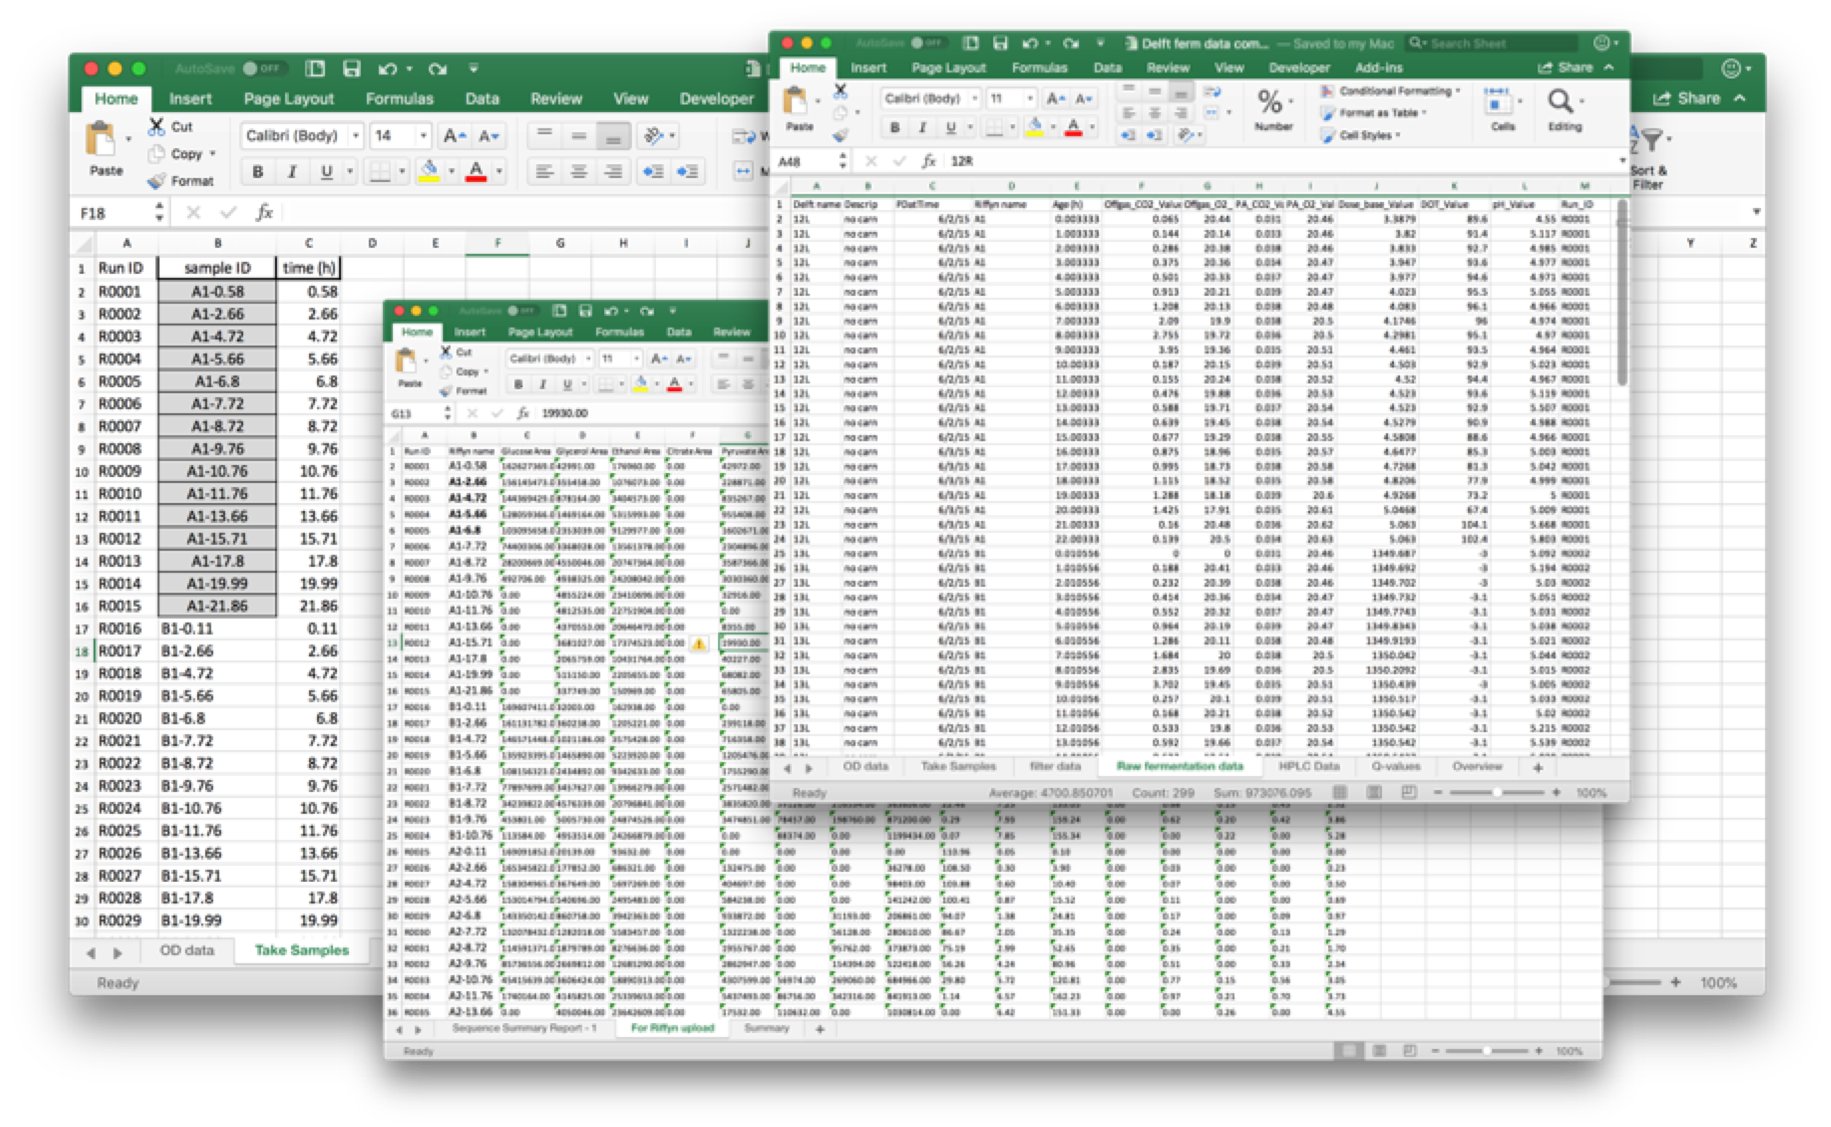 Experimental data is often kept in siloed spreadsheets and databases.